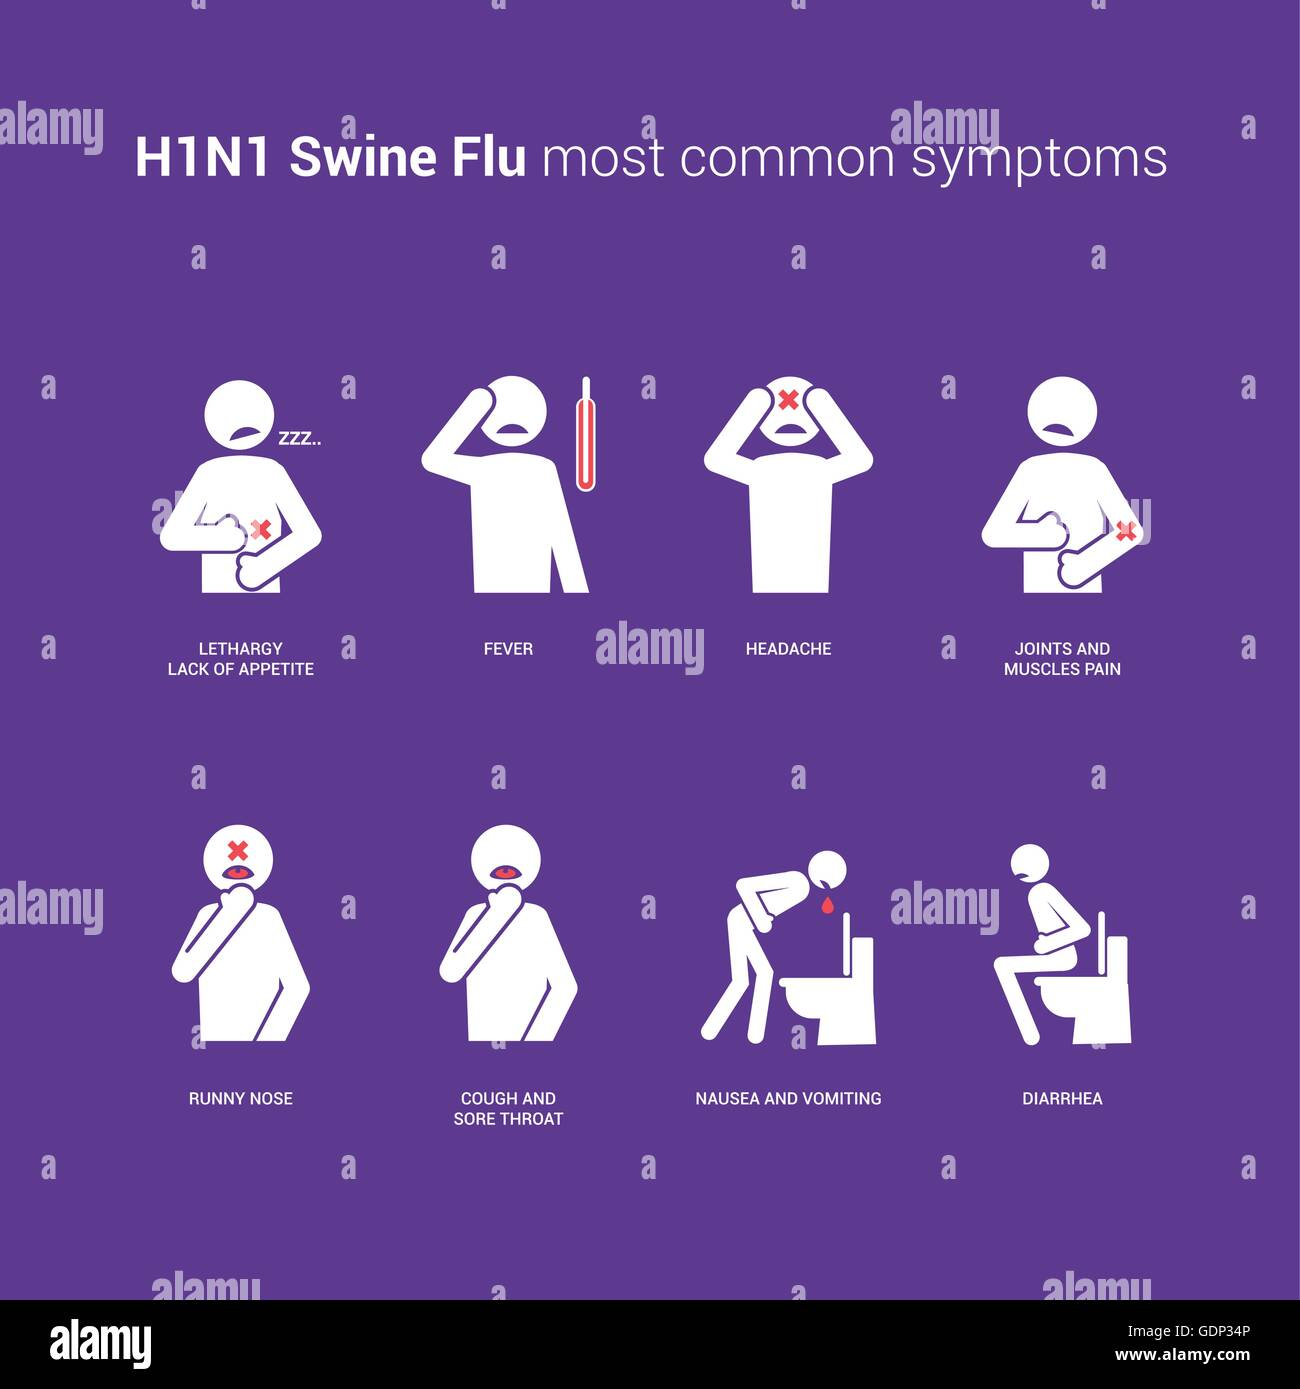 H1N1 Swine flu symptoms with stick figures and text - Stock Vector